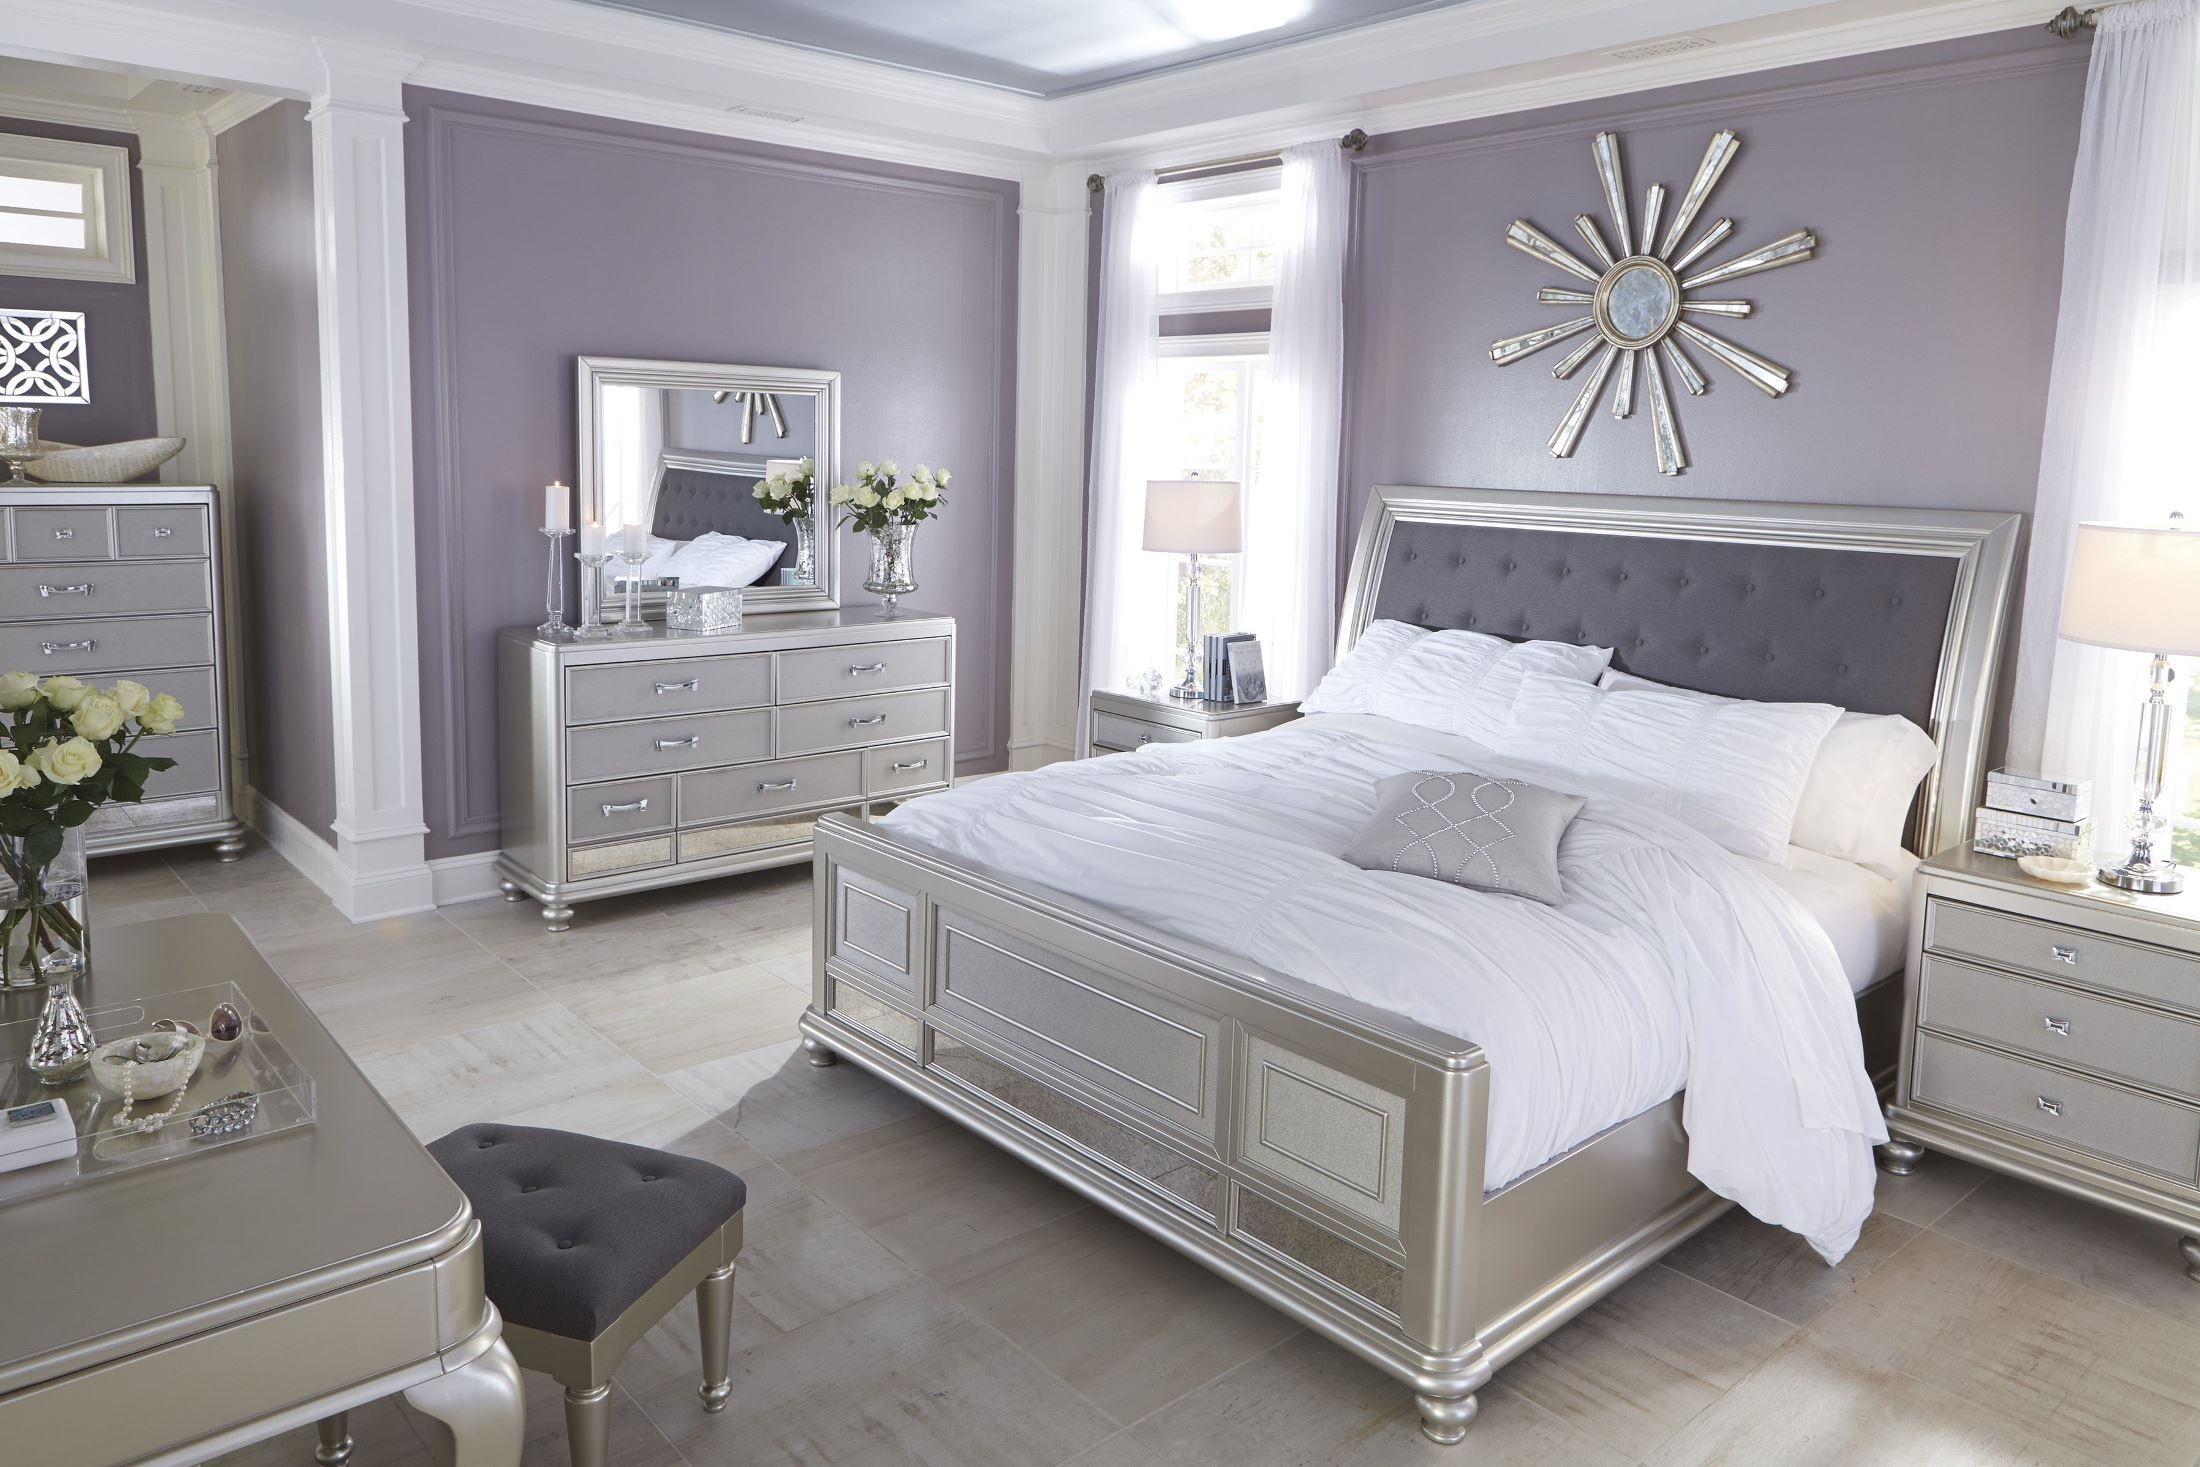 Coralayne Silver Bedroom Set B650 157 54 96 Ashley Furniture